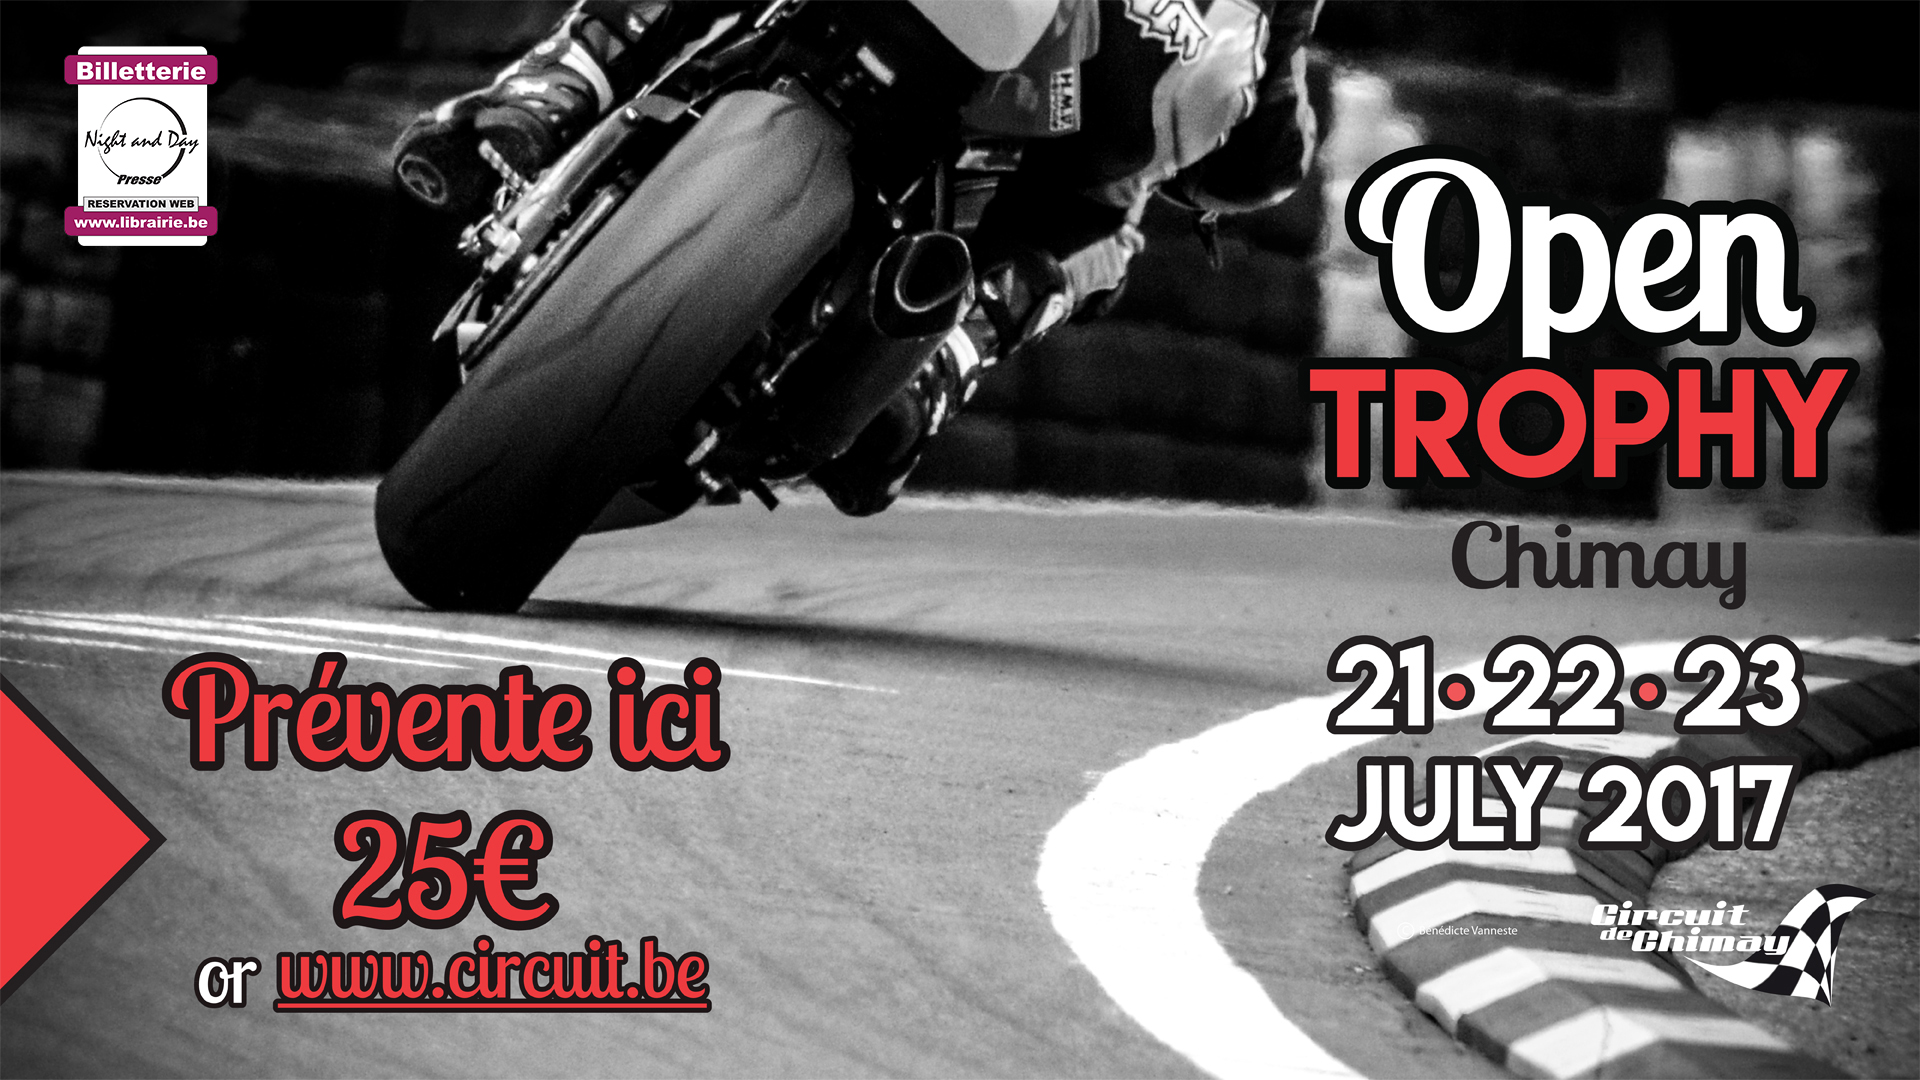 Concours Open Trophy Chimay